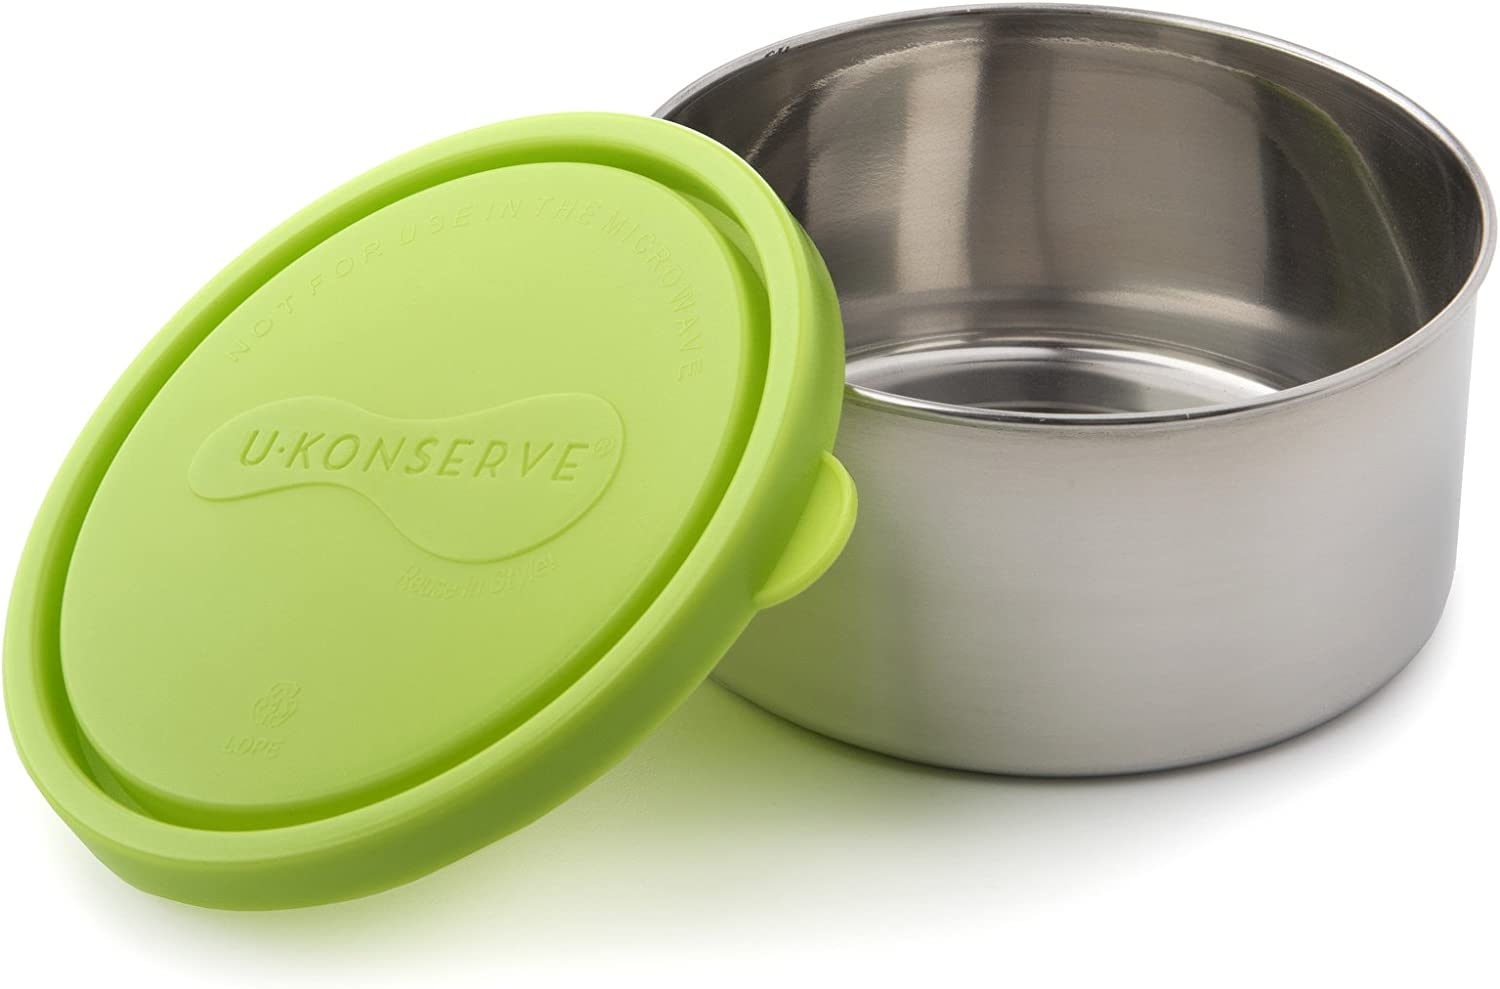 U Konserve - Round Container, Stainless Steel, Pack in Lunches, Picnics and Travel, Perfect for Fruit Salad, Cut Veggies, Pasta Salad and More, Dishwasher Safe (Medium, Lime)